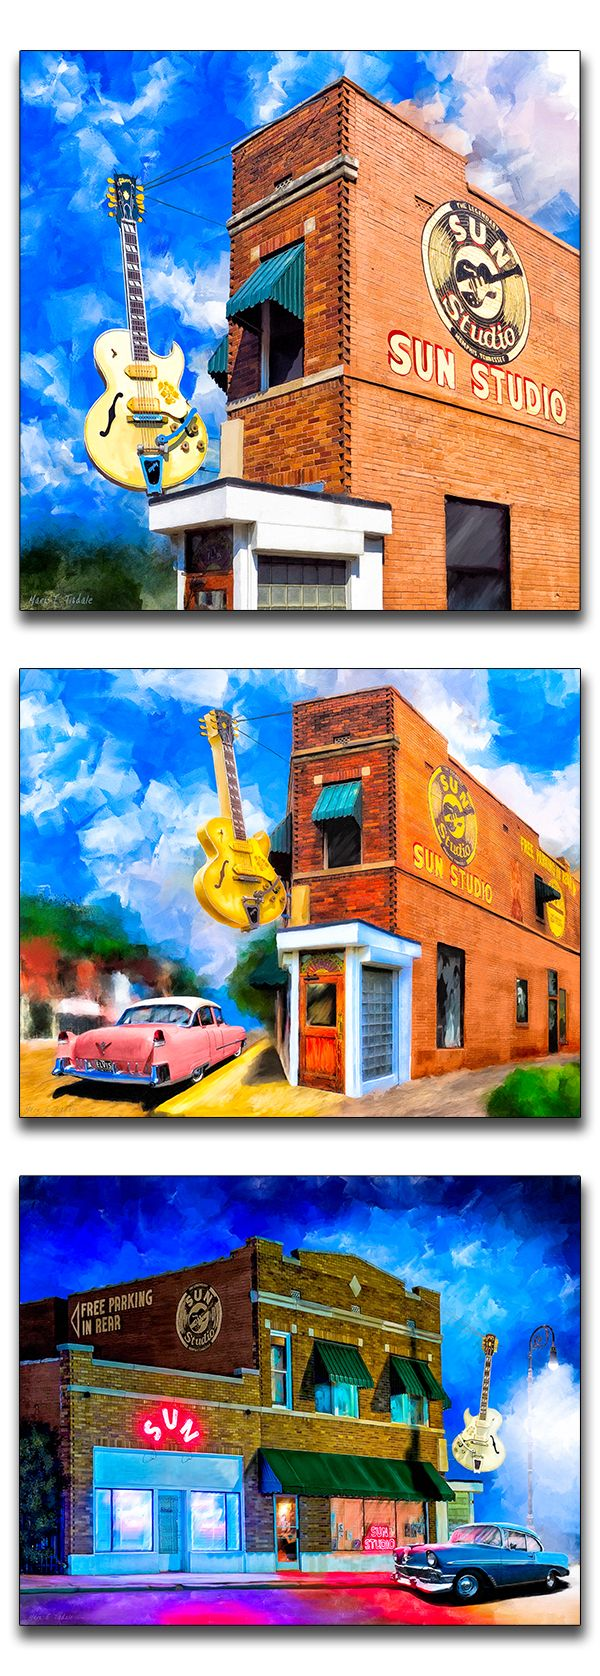 Popular artwork inspired by the 'Birthplace of Rock 'n' Roll' - Legendary Sun Studio in historic Memphis Tennessee. Elvis amongst a cavalcade of notables recorded here.